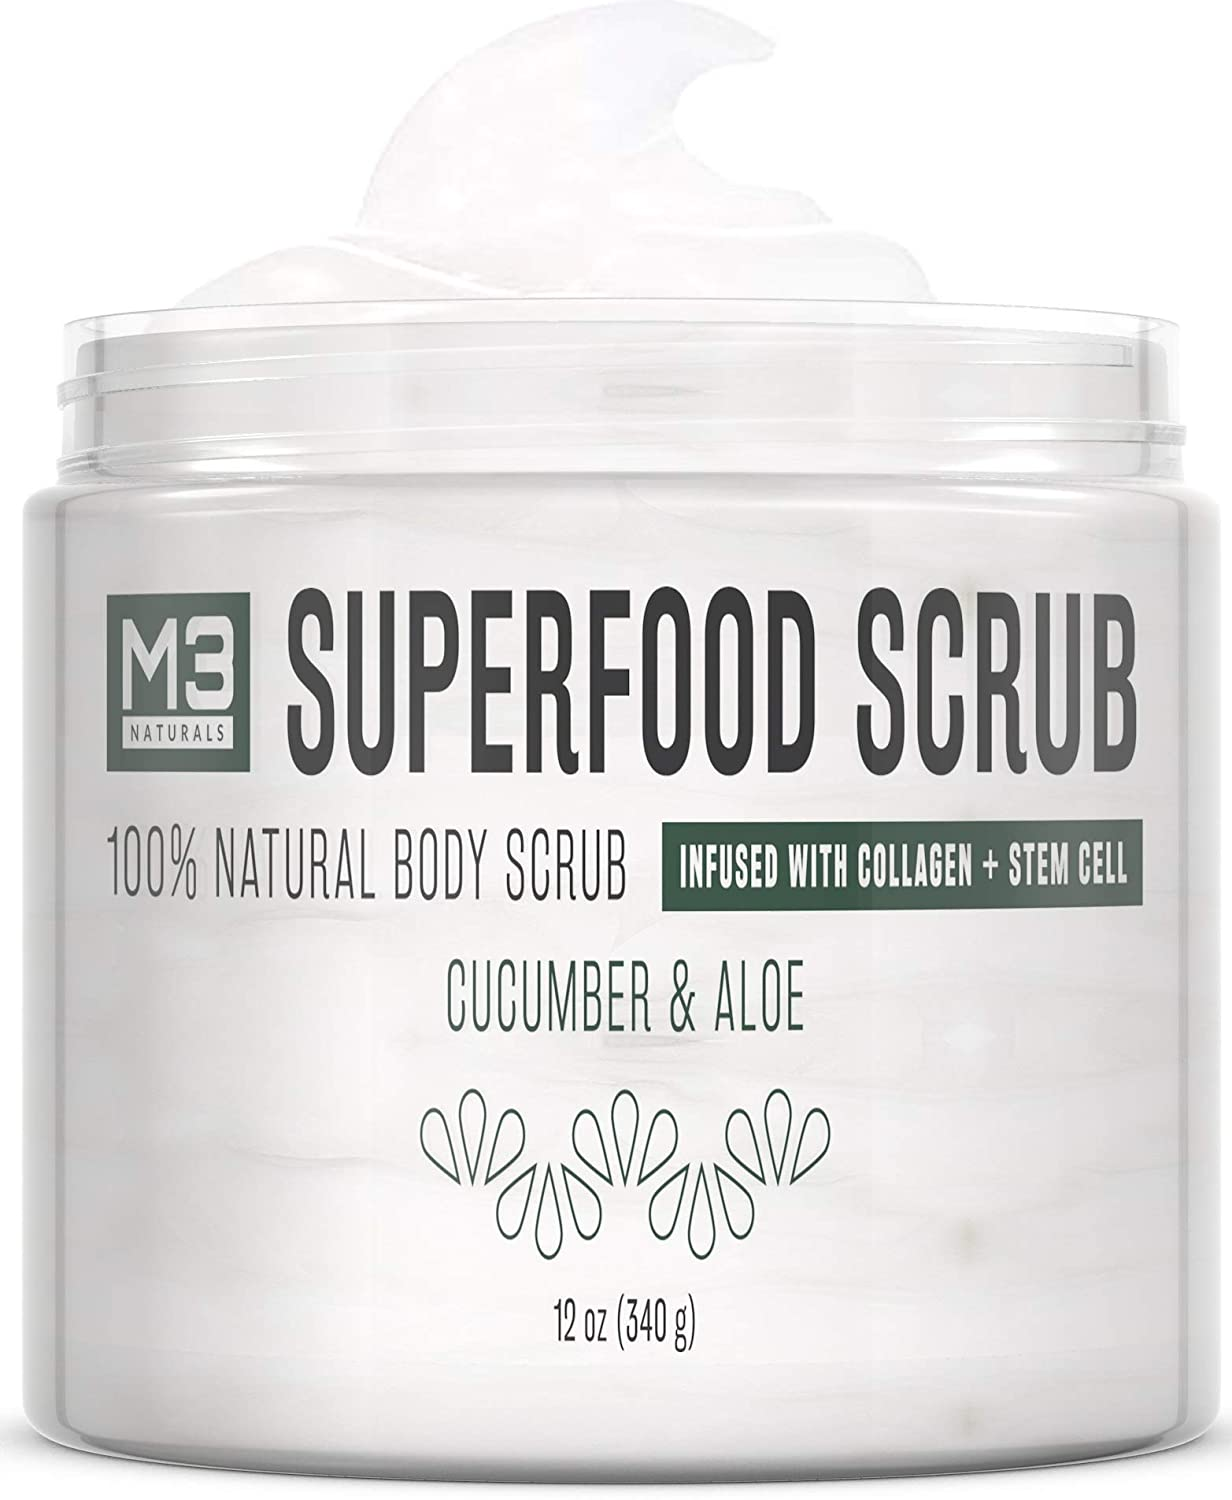 M3 Naturals Superfood Scrub infused with Collagen and Stem Cell All Natural Cucumber Aloe Body and Face Exfoliating Facial Wash Blackheads Acne Scars Pore Minimizer Exfoliator Souffle Skin Care